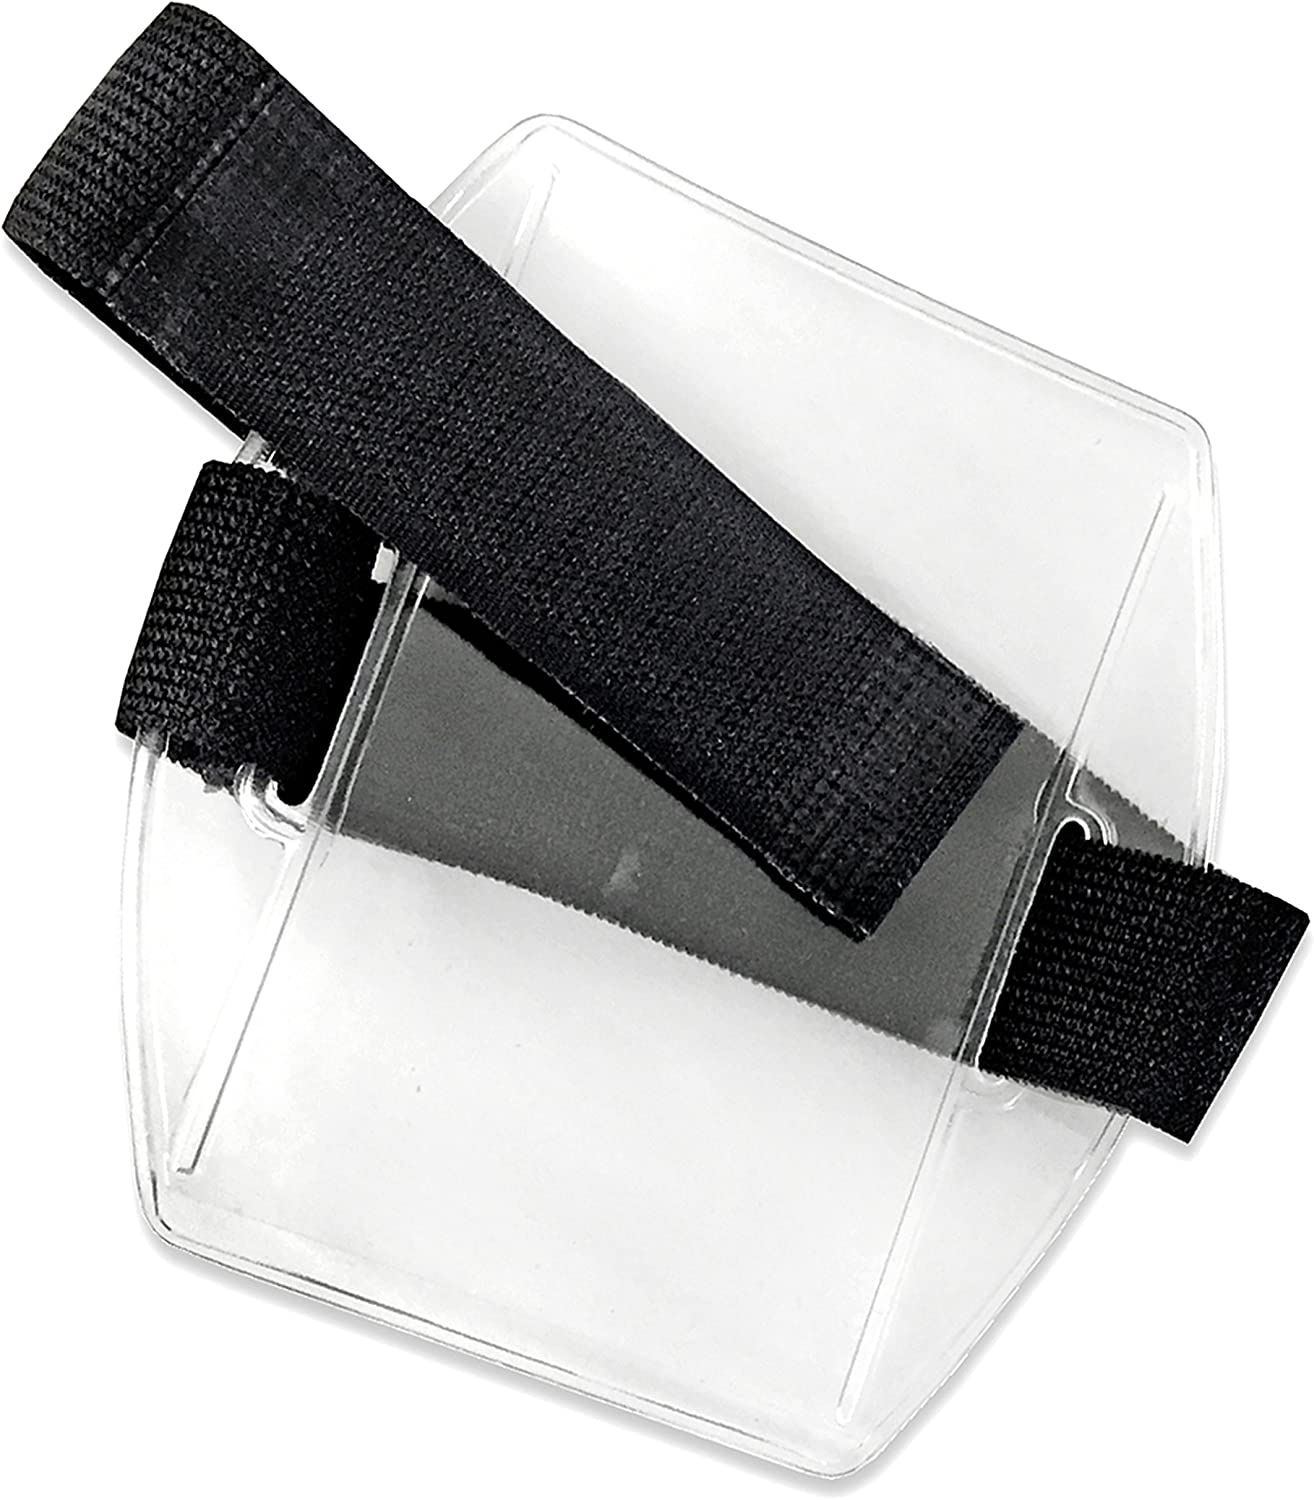 Armband ID Badge Holder with Black Strap Arm Band by OnDepot.com - Pack of 50 PCS